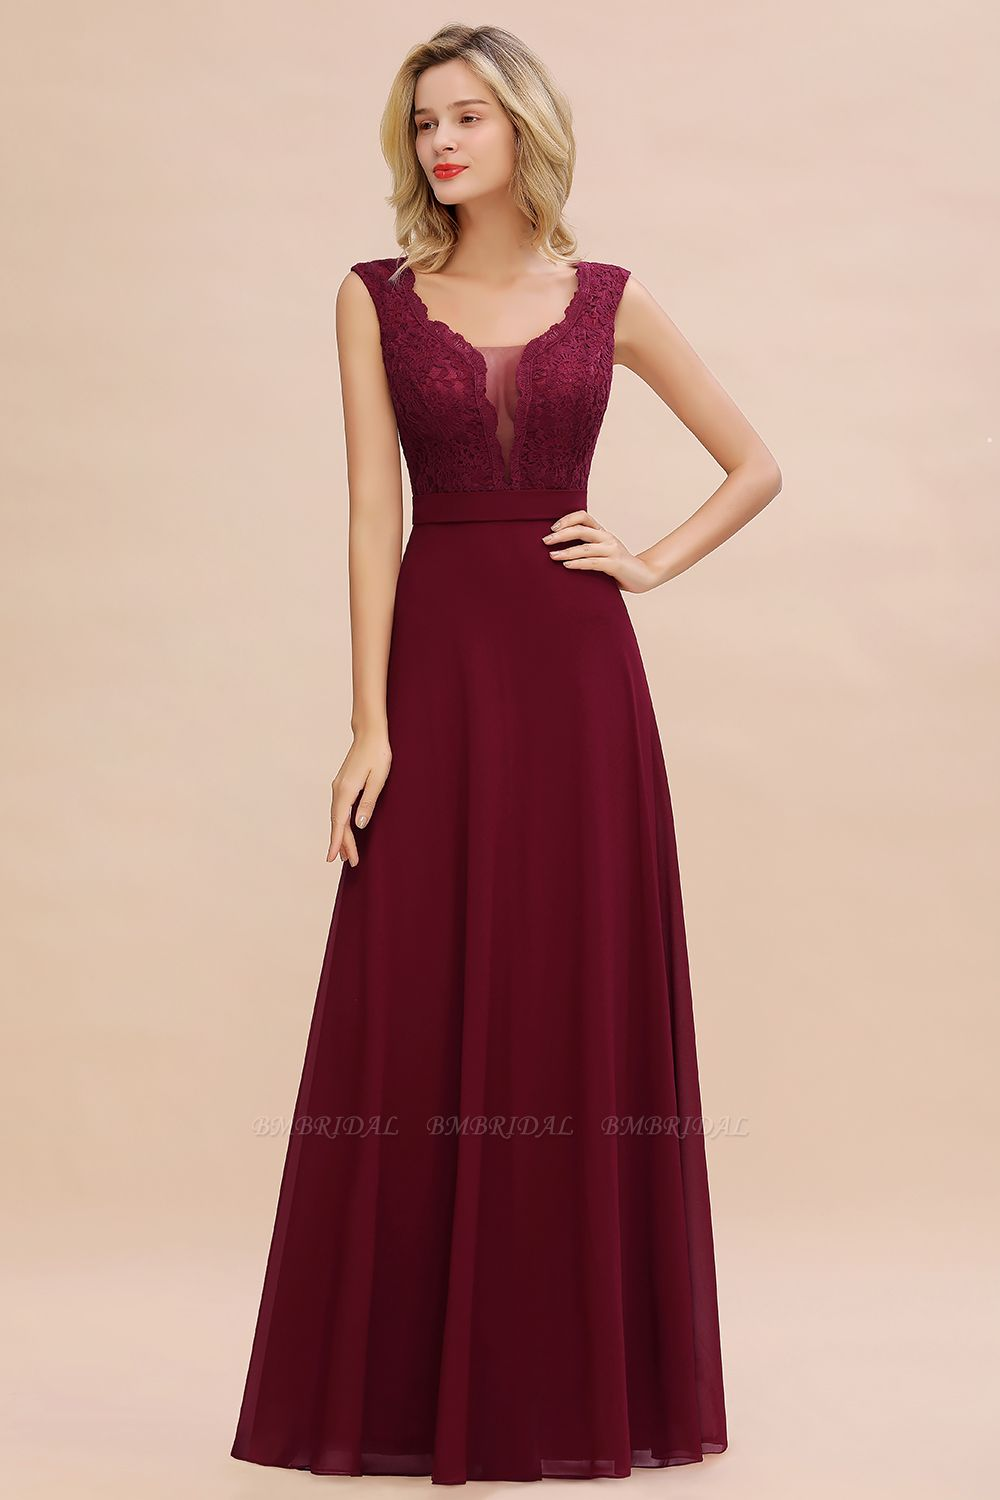 BMbridal Elegant Lace Deep V-Neck Burgundy Bridesmaid Dress Affordable